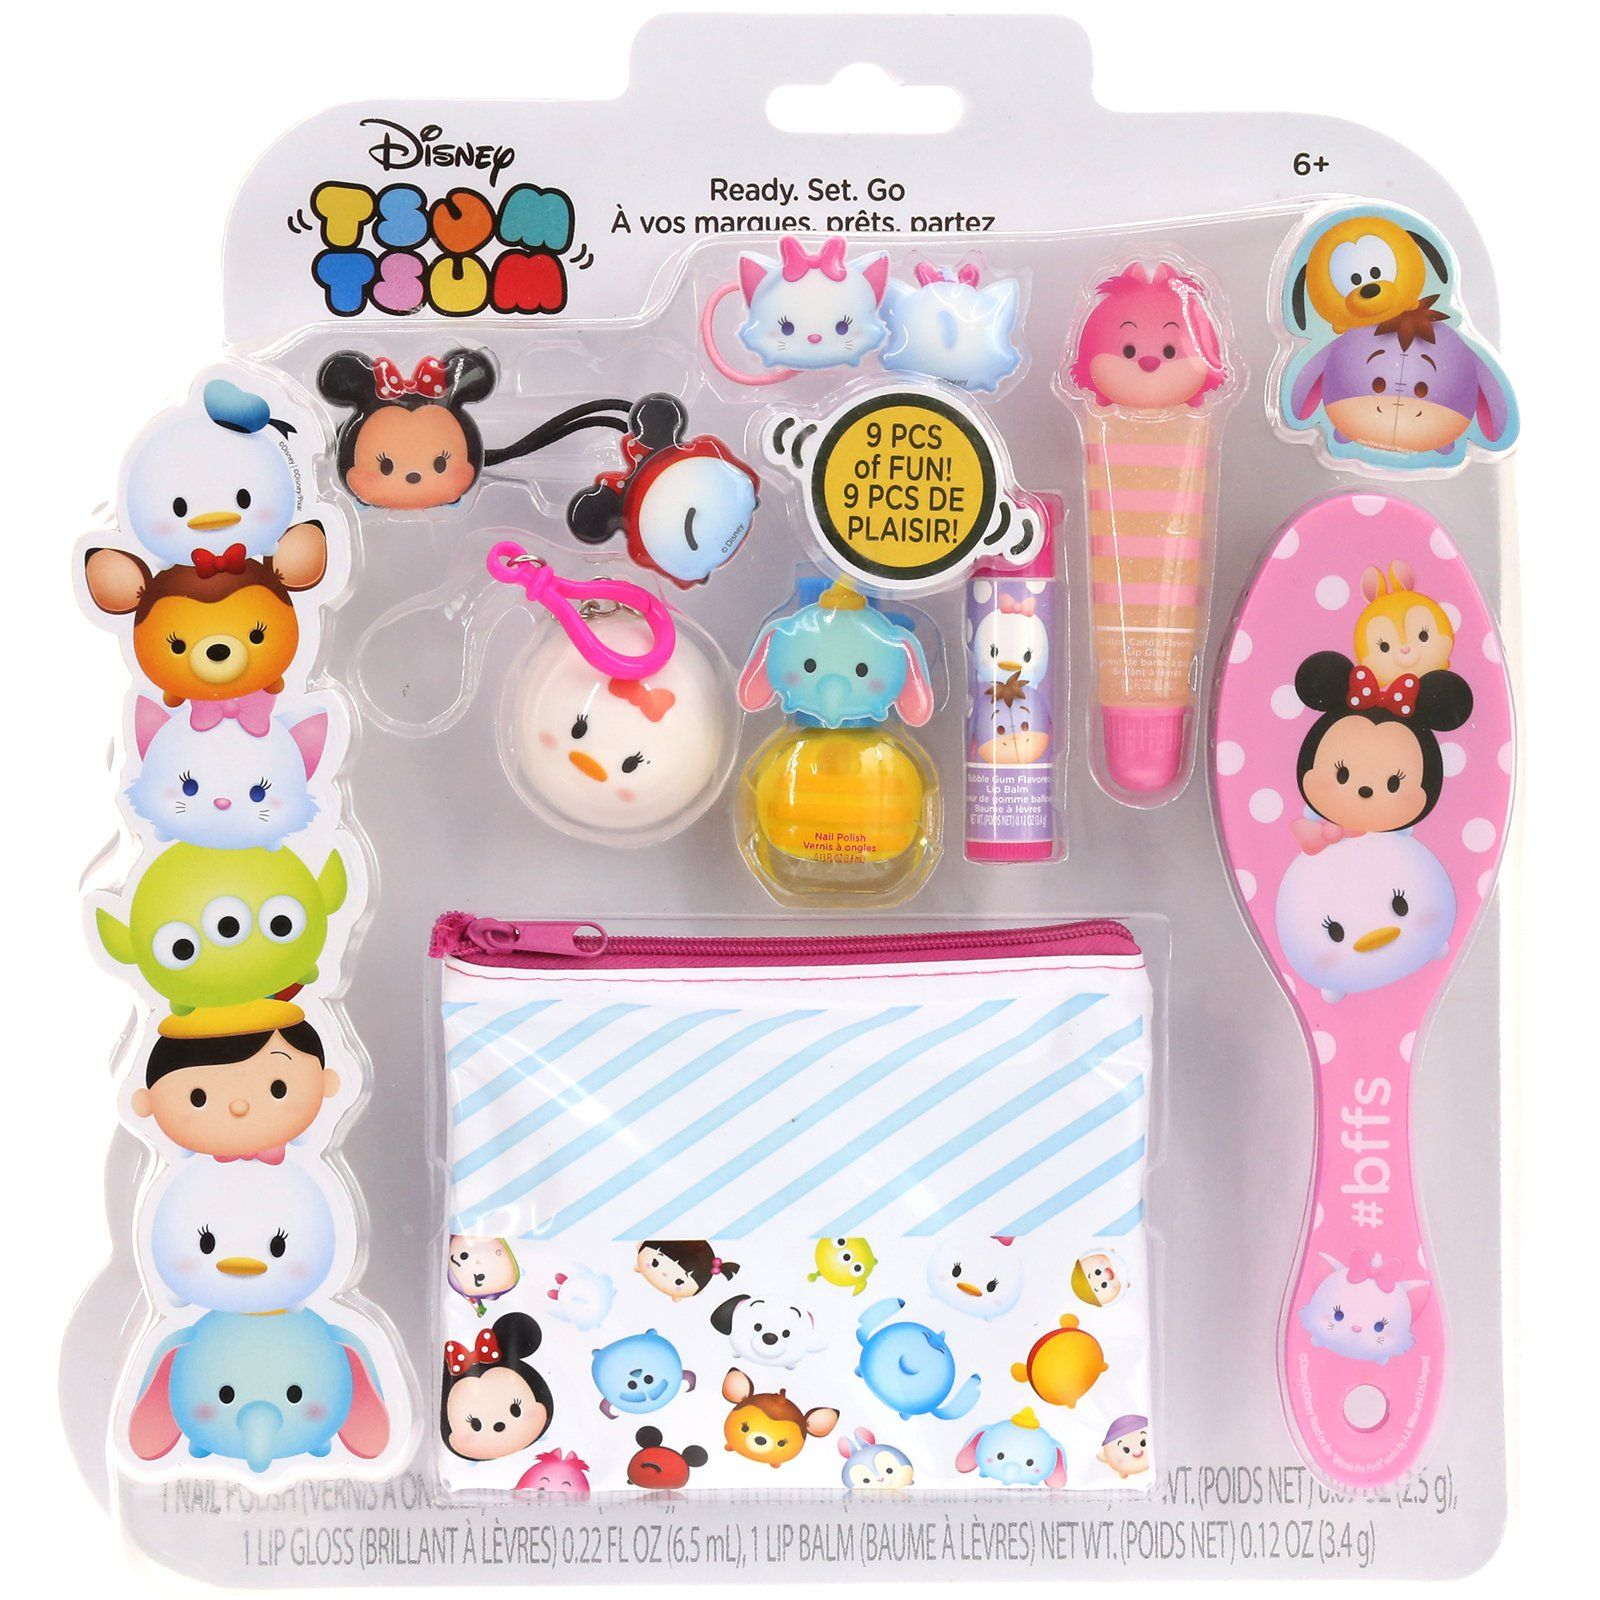 Townleygirl Disneys Tsum Tsum Cosmetic Set With Lip Balm Gloss